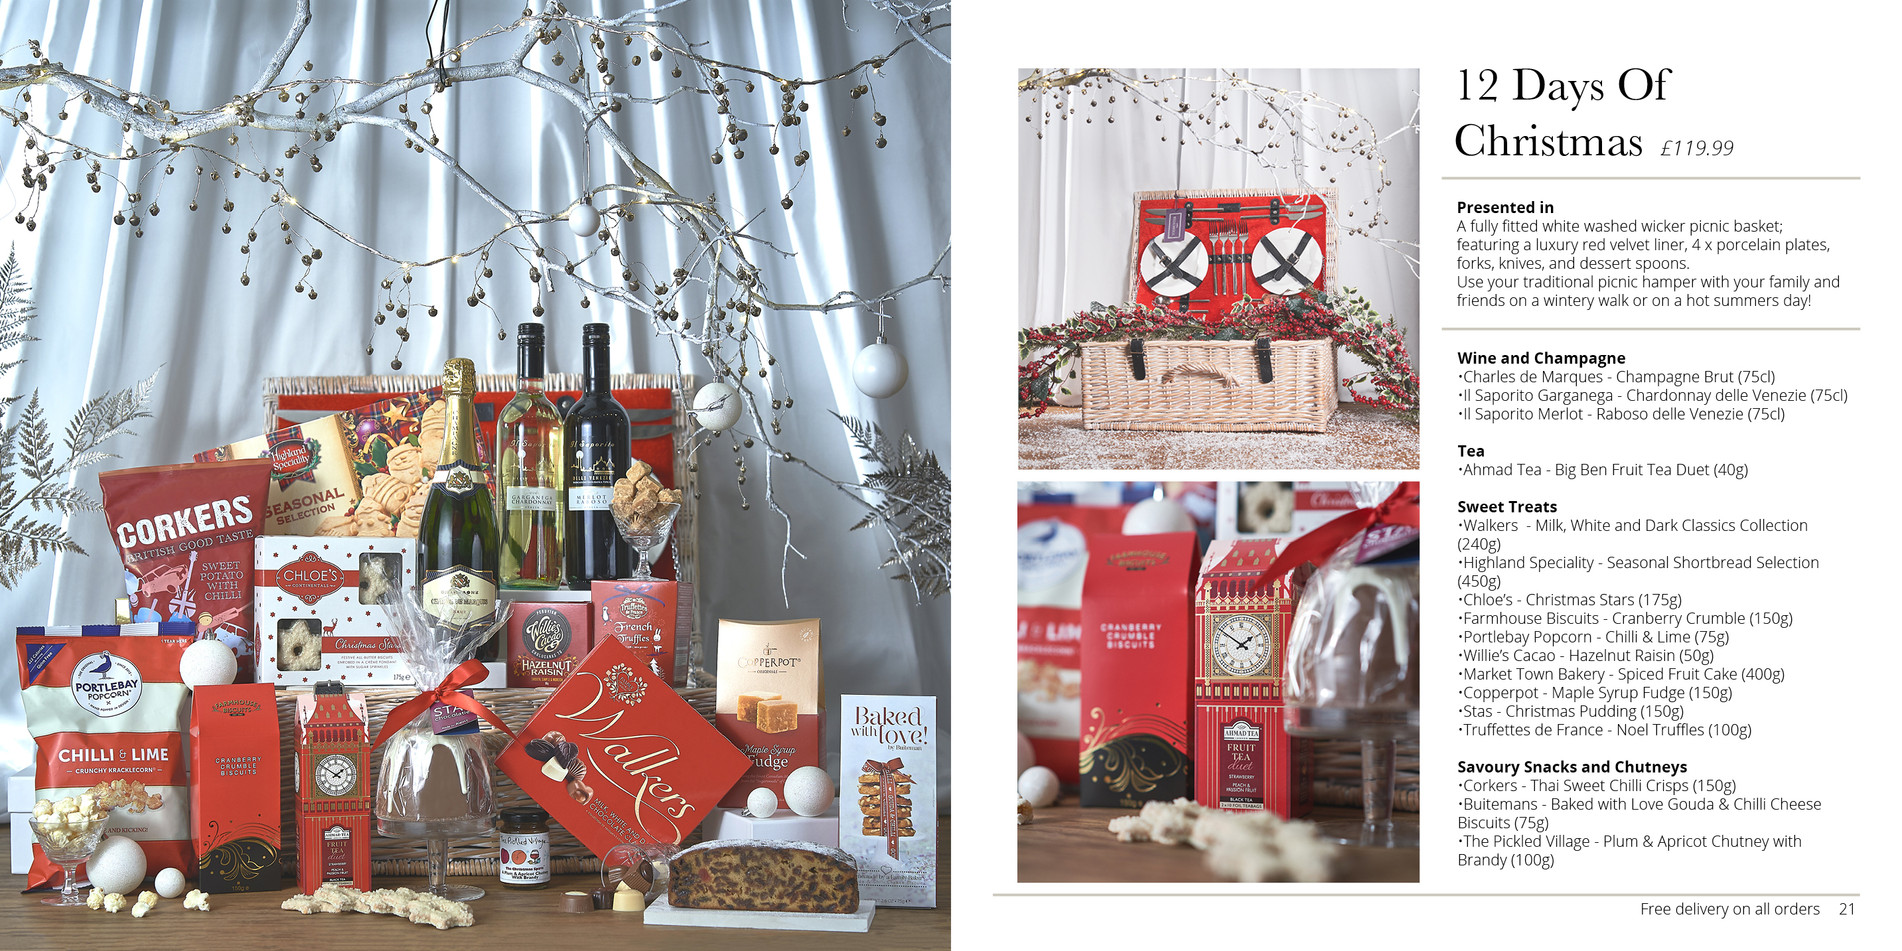 Todhunter Christmas - Gifts & Hampers Br